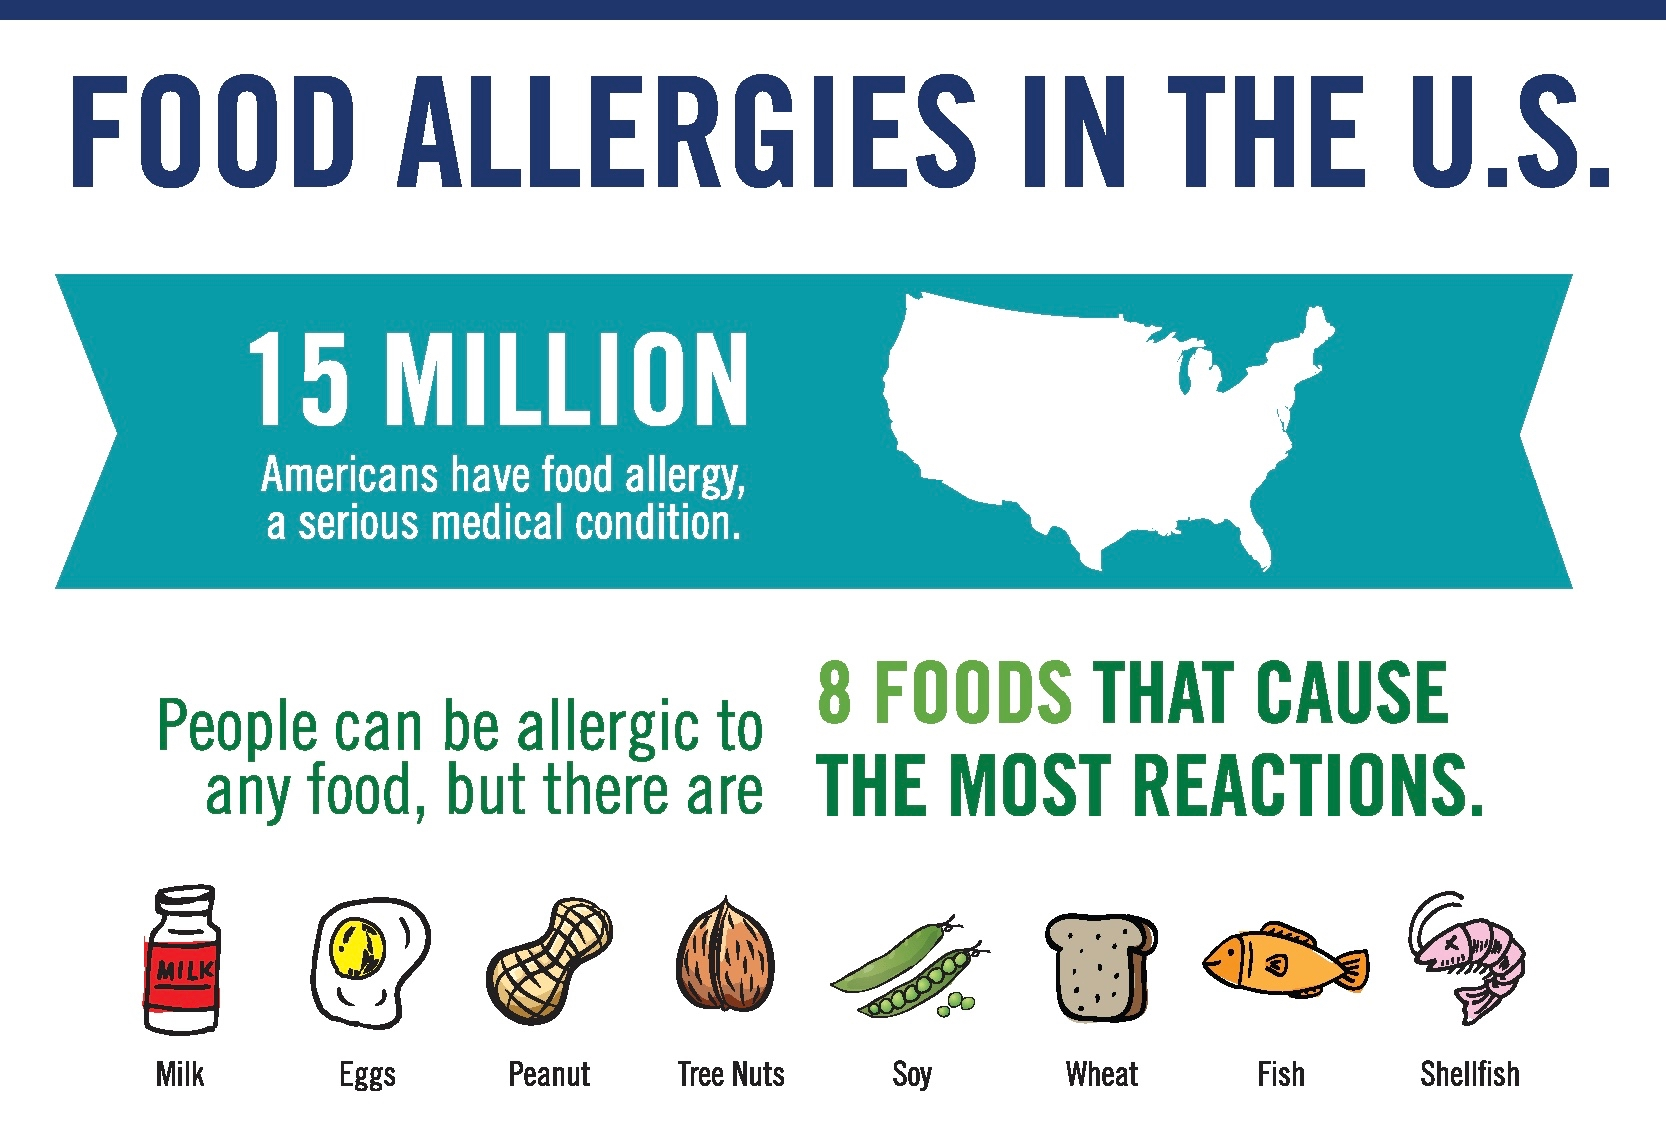 Food allergies are a modern public health problem. Carousel Photo